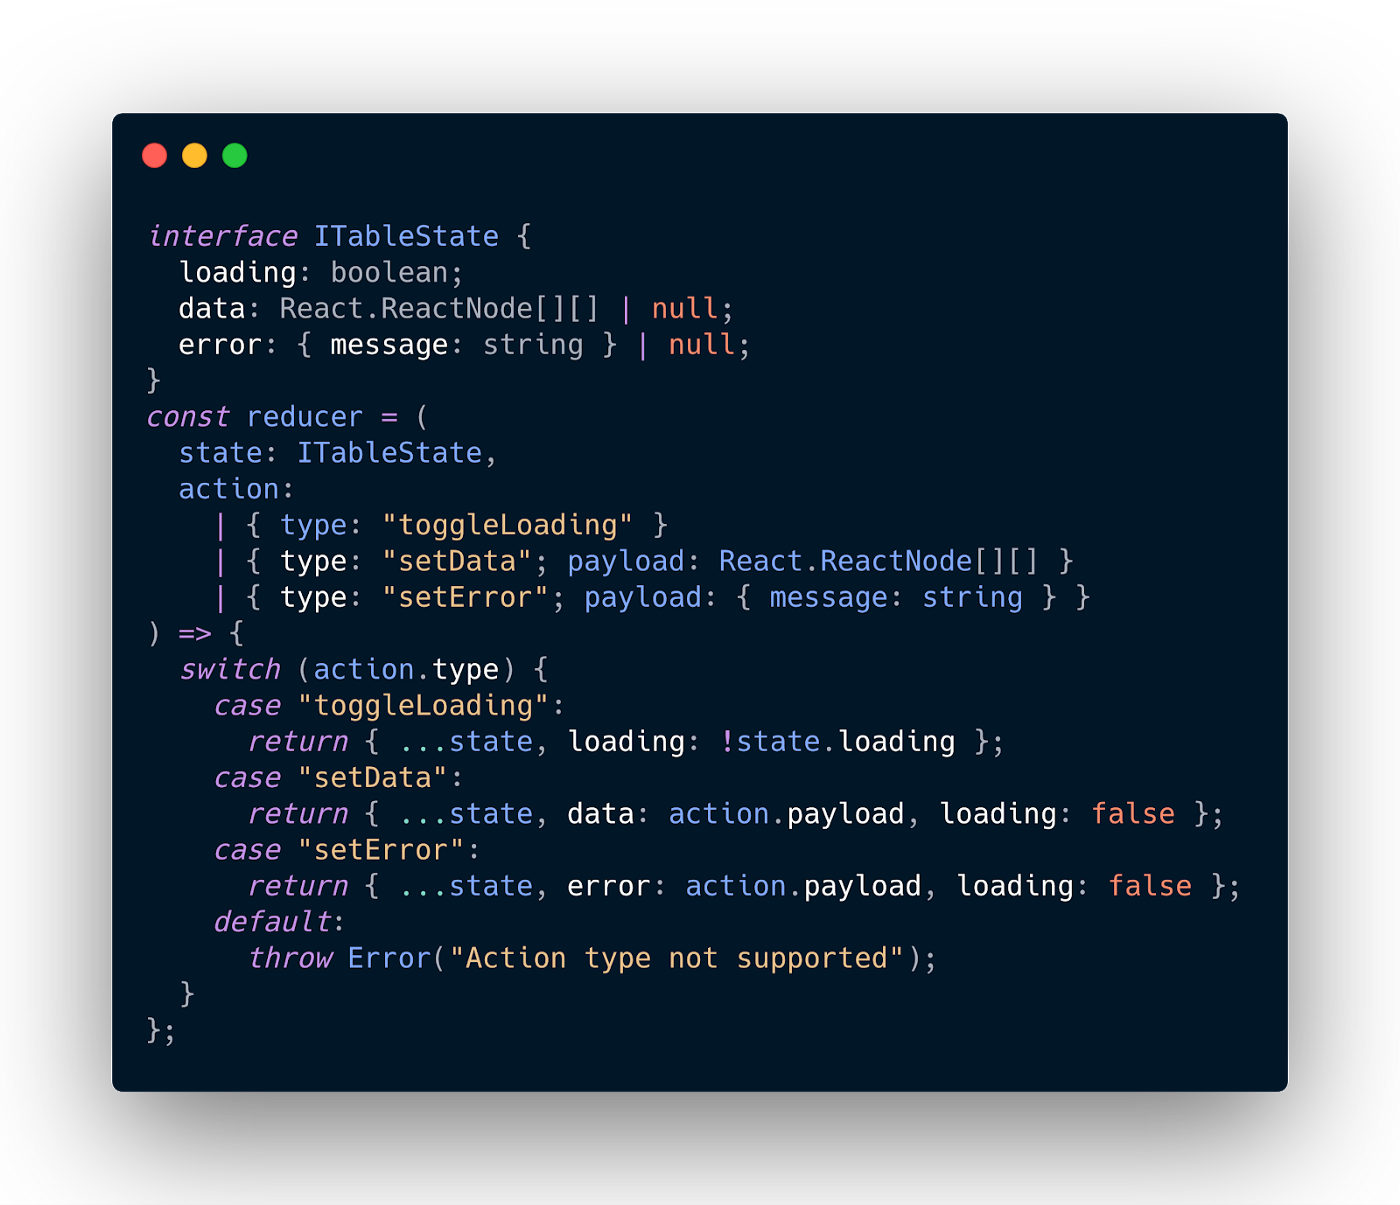 The core reducer of our useTableState hook